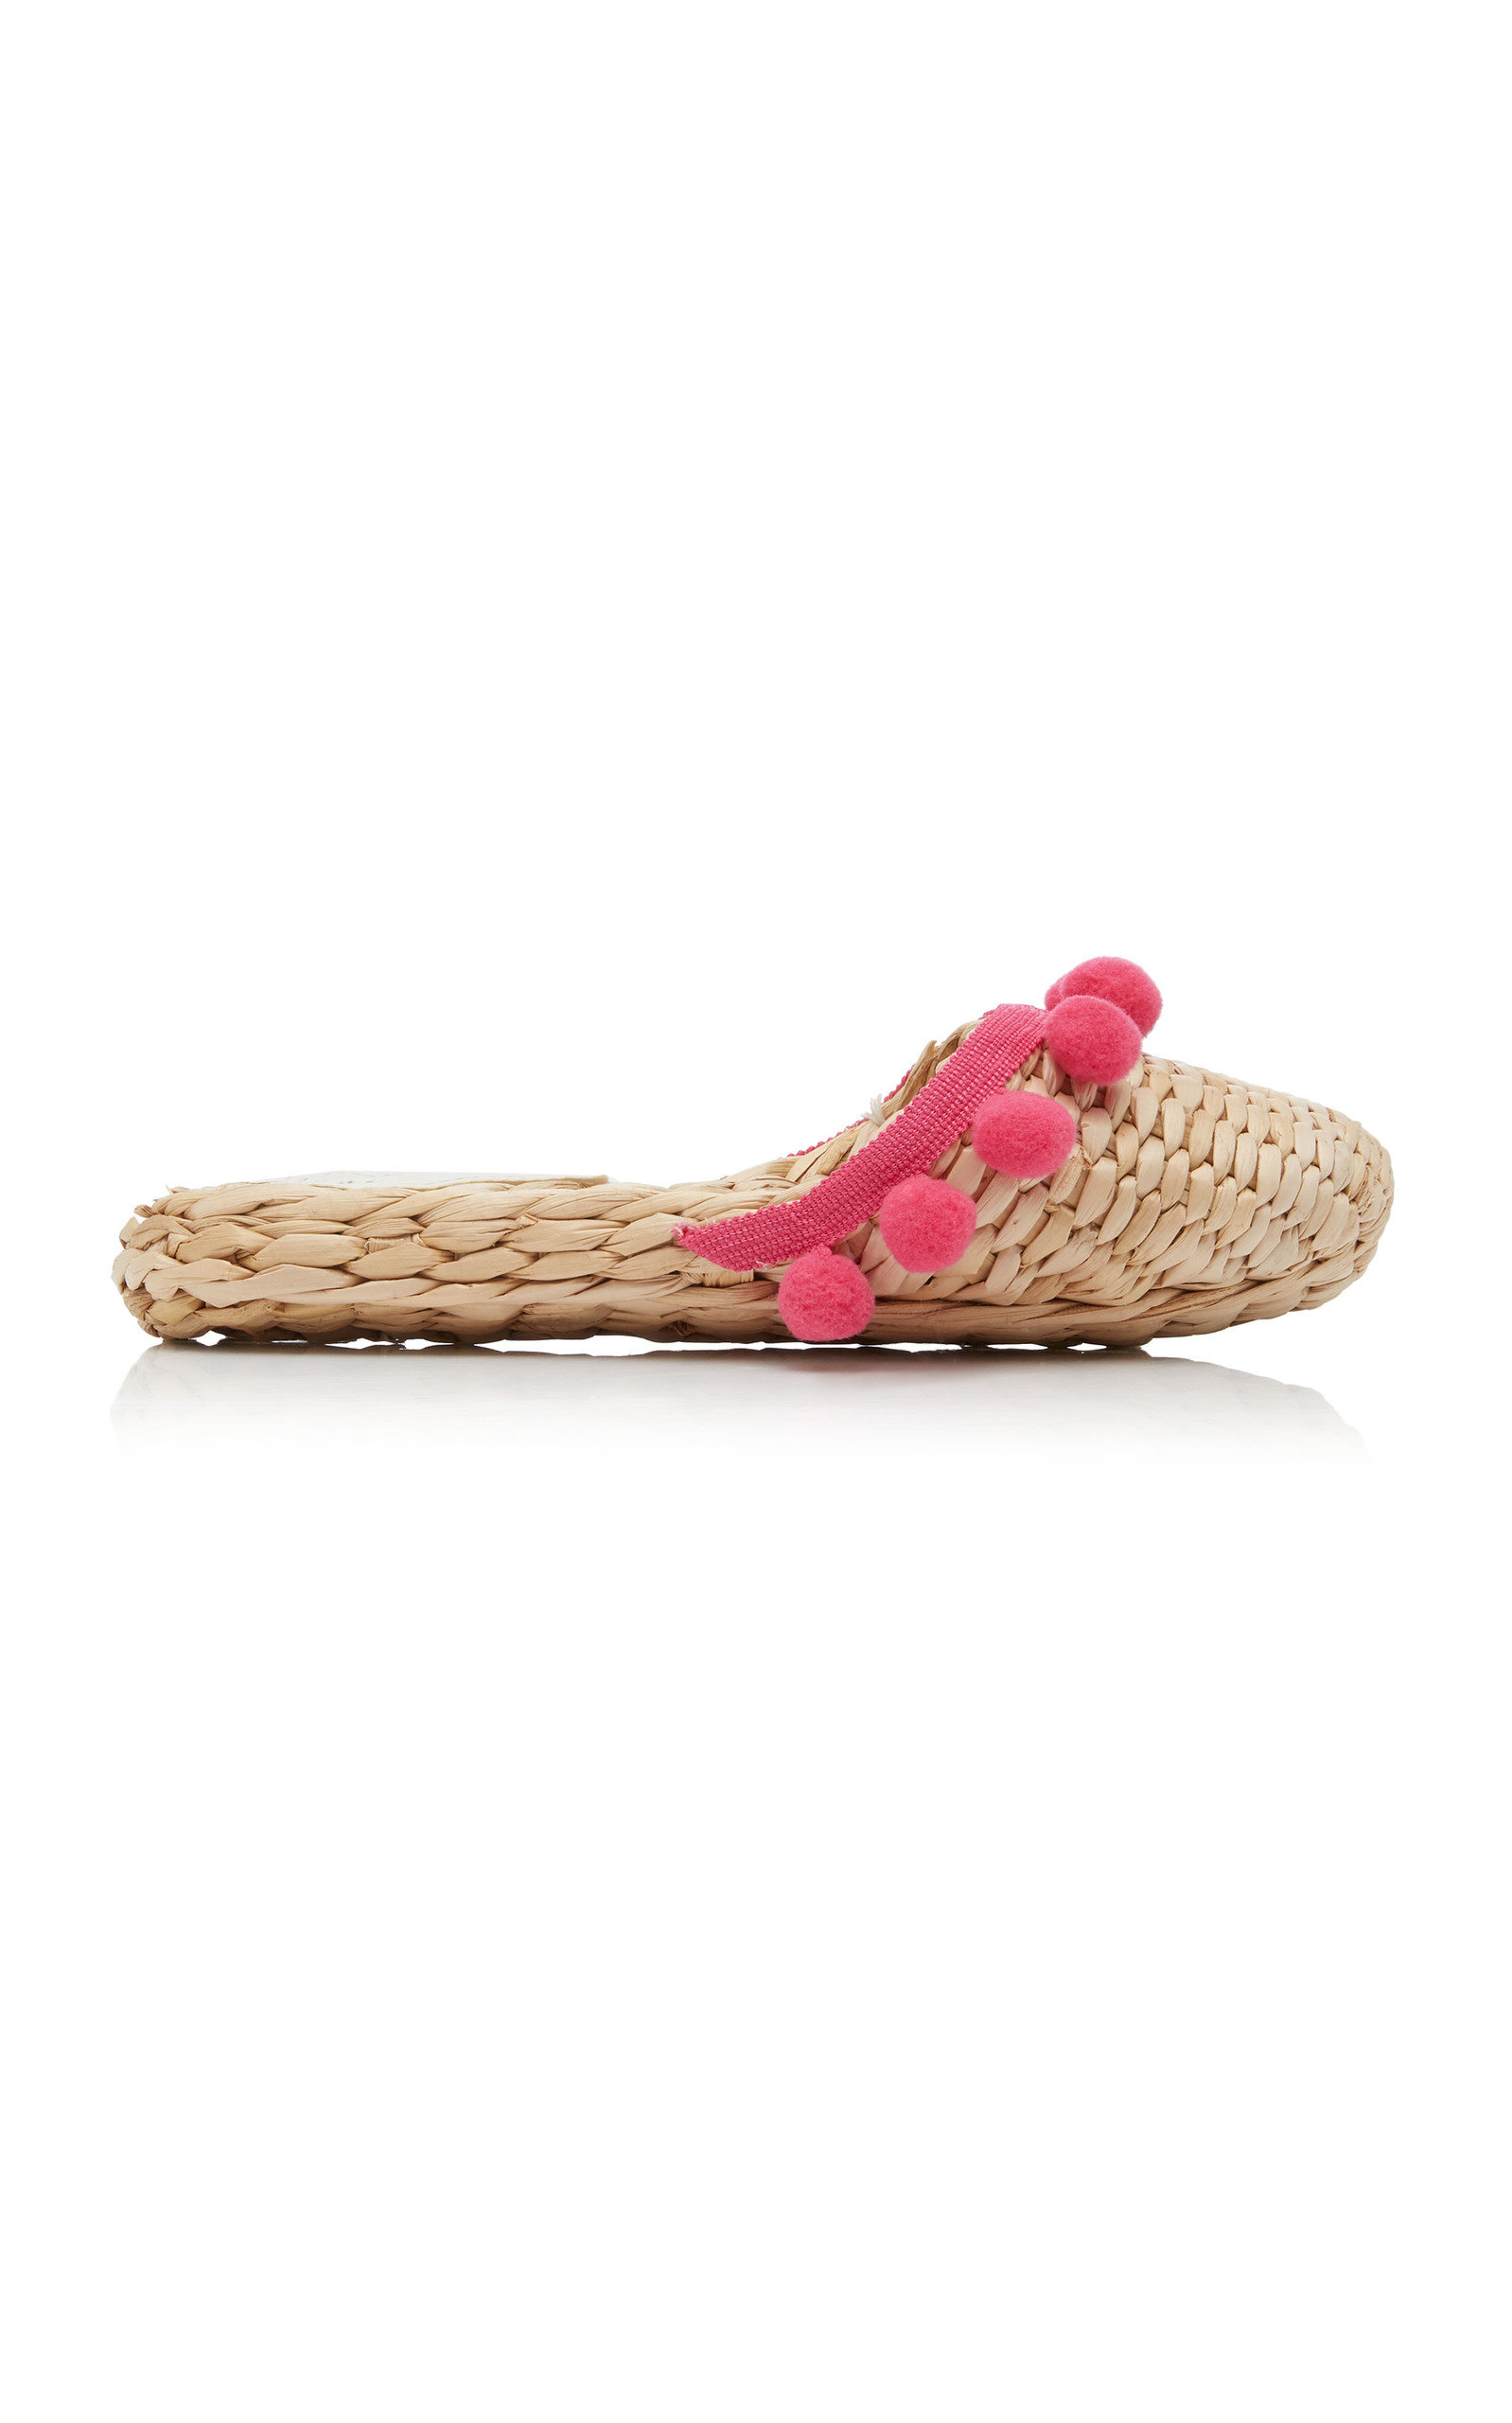 M'O EXCLUSIVE: MONOGRAM POM POM STRAW SLIPPERS